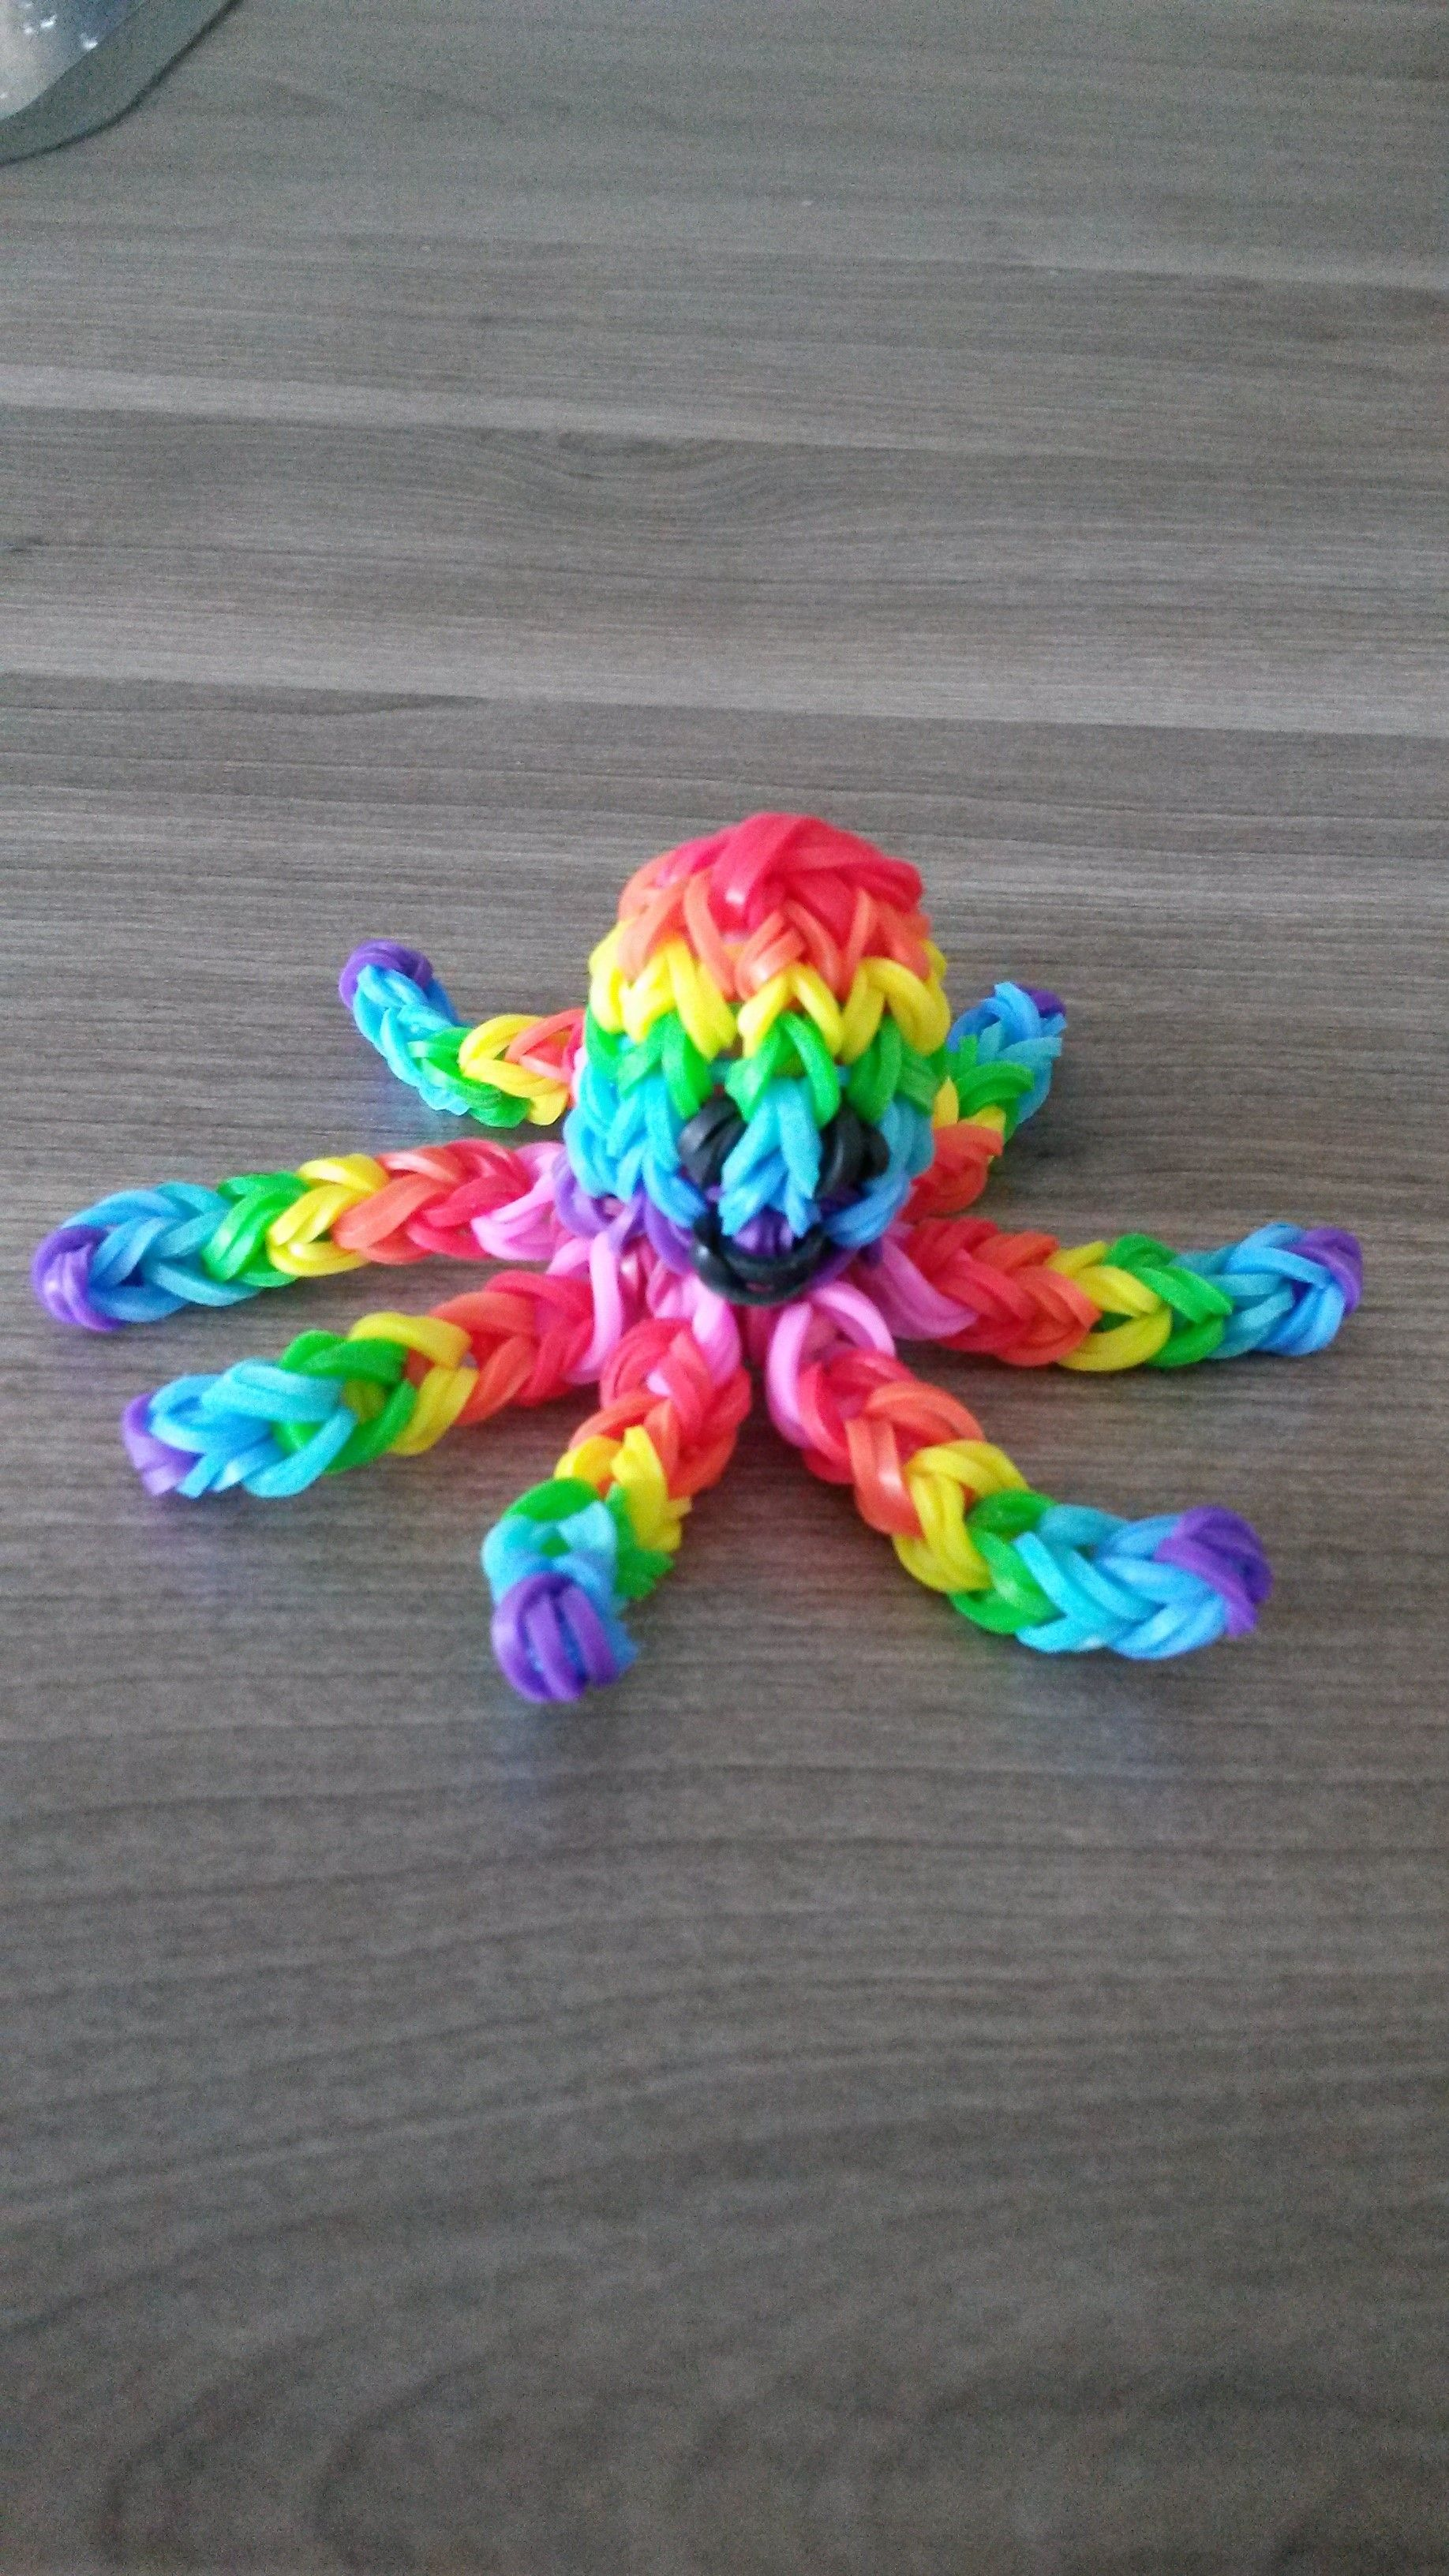 rainbow loom octopus 3d crazy loom manon pinterest elastique loom la grande et rainbow loom. Black Bedroom Furniture Sets. Home Design Ideas